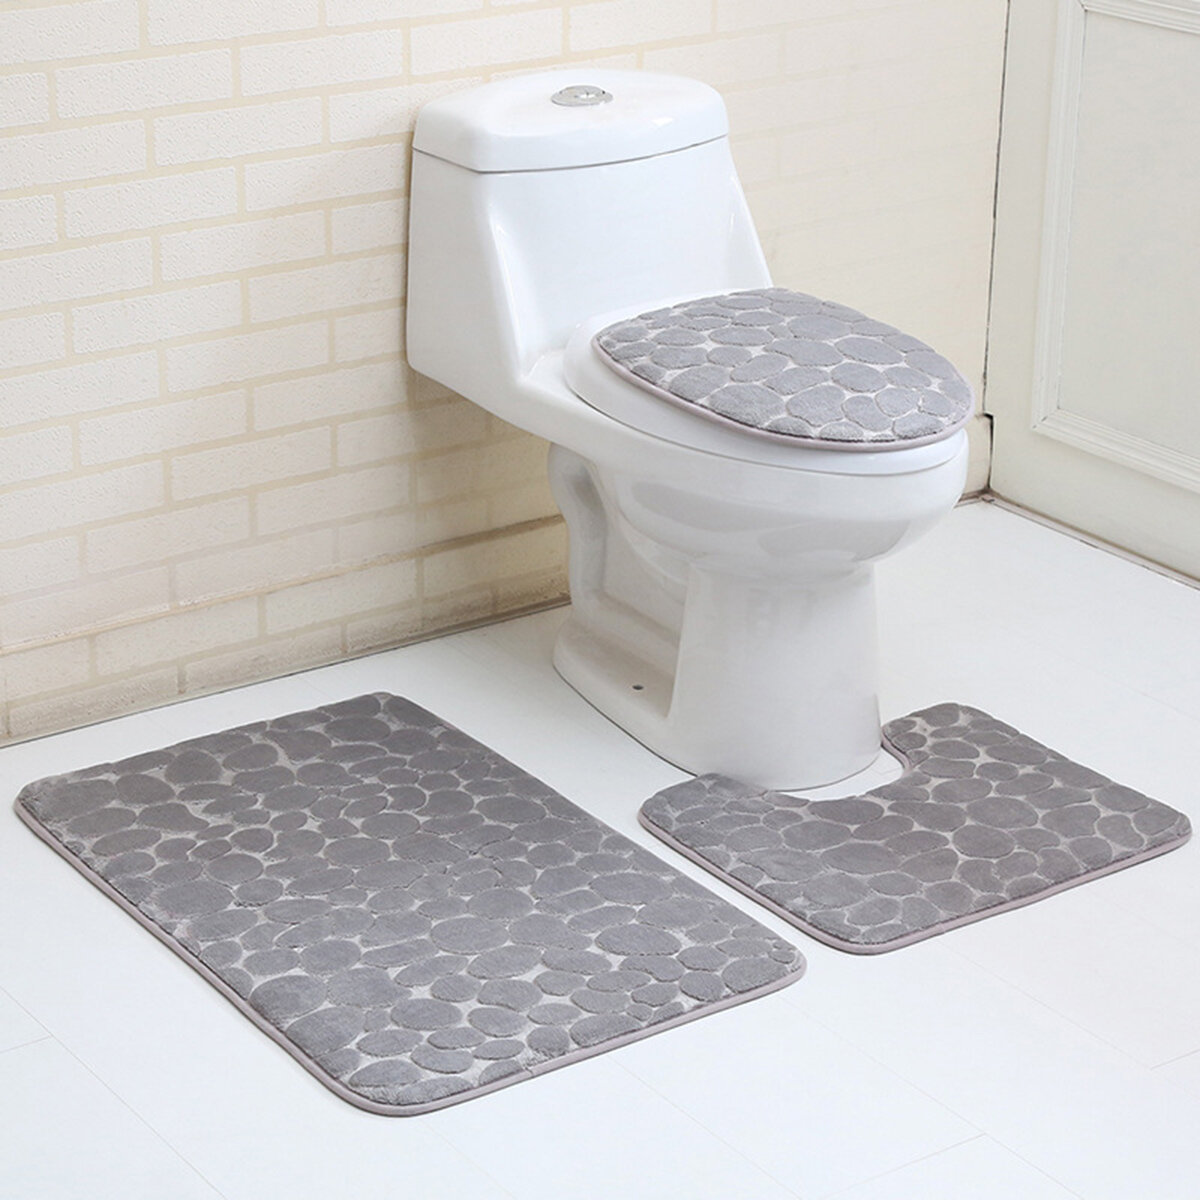 Amazing 3Pcs Toilet Seat Covers Bathroom Carpet Non Slip Pedestal Rug Lid Toilet Cover Bath Mat Set Gmtry Best Dining Table And Chair Ideas Images Gmtryco